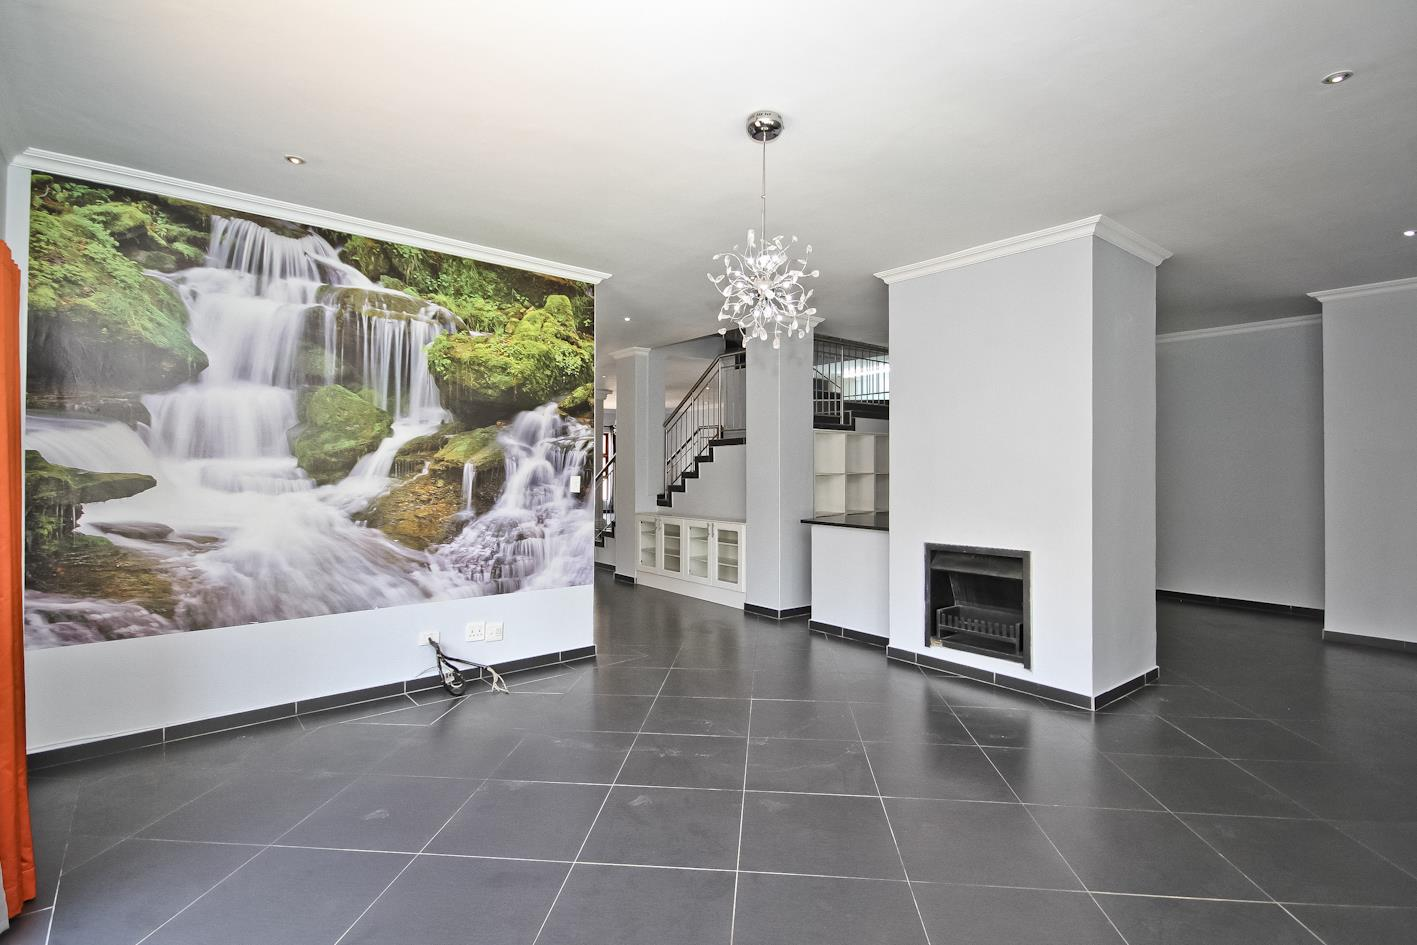 5 Bedroom House For Sale in Thornhill Estate